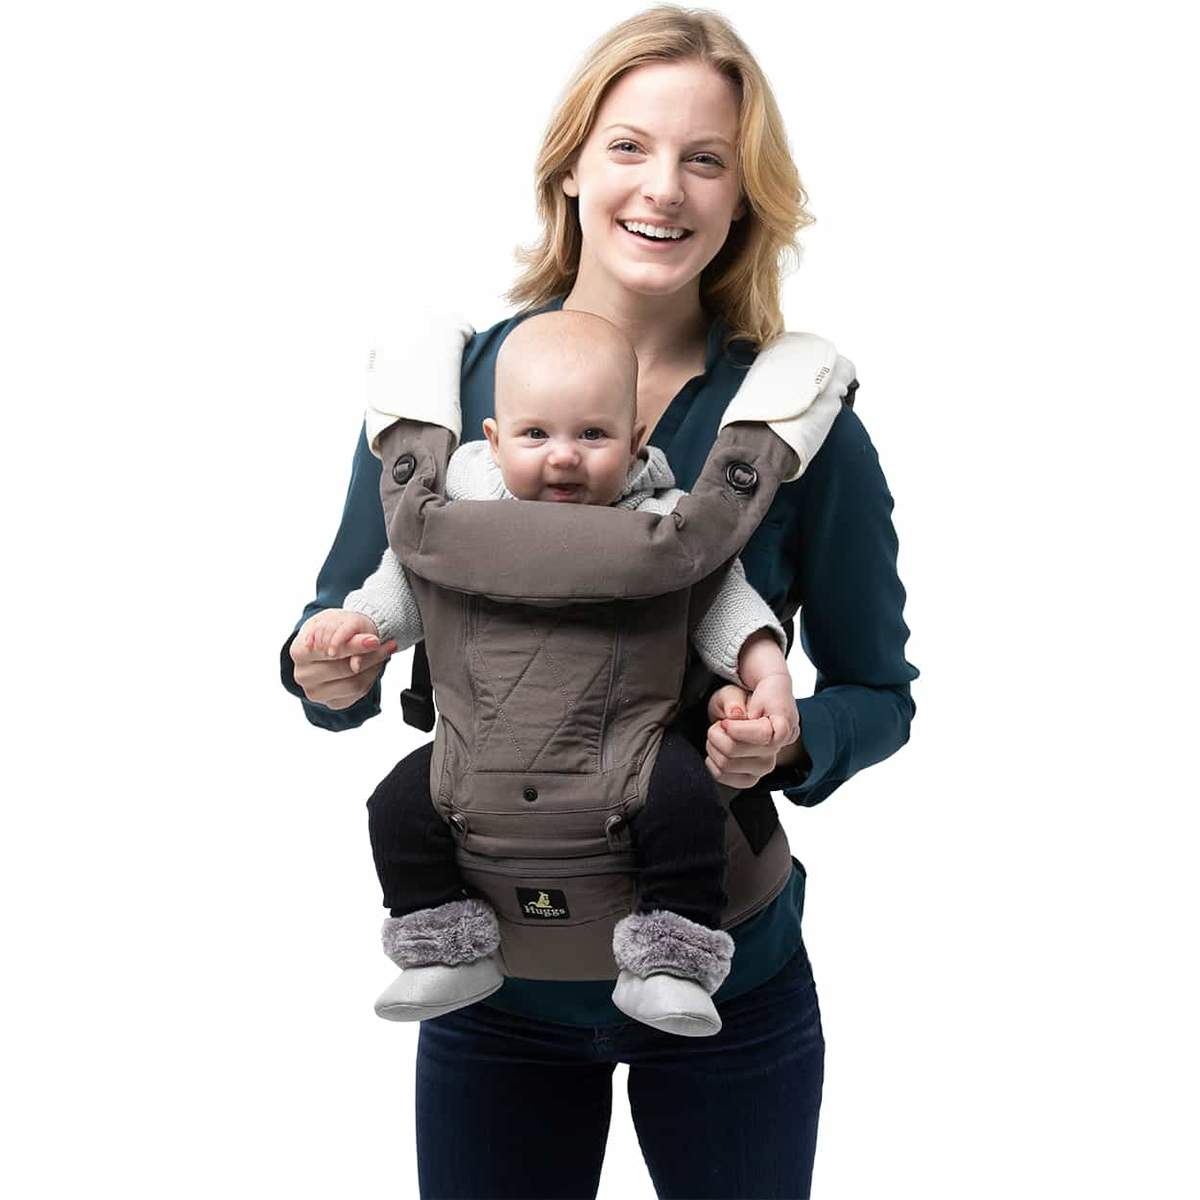 Best baby carrier for kids in USA